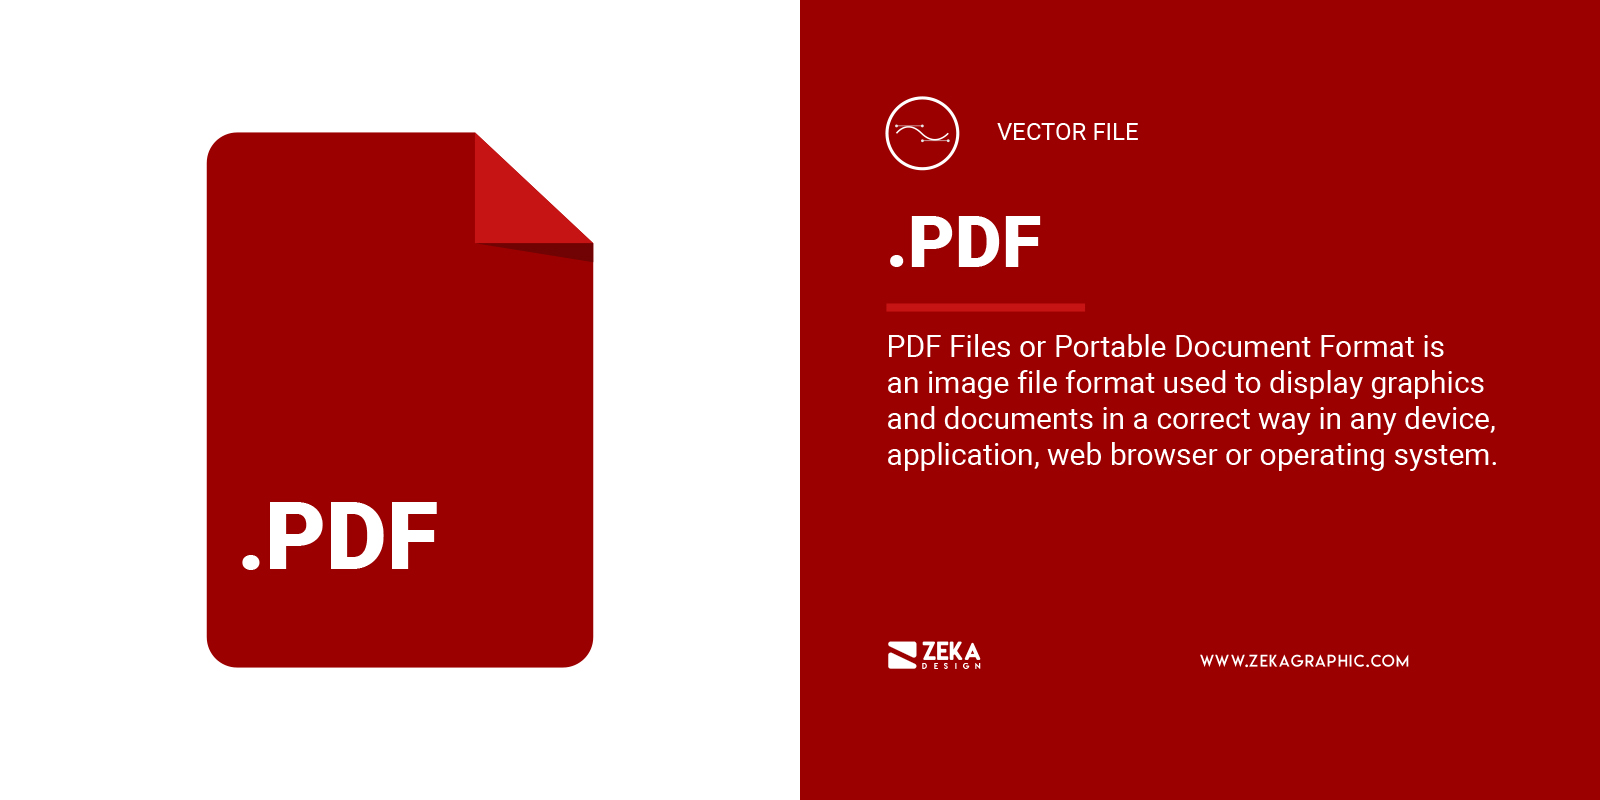 PDF File Format in Graphic Design Explained